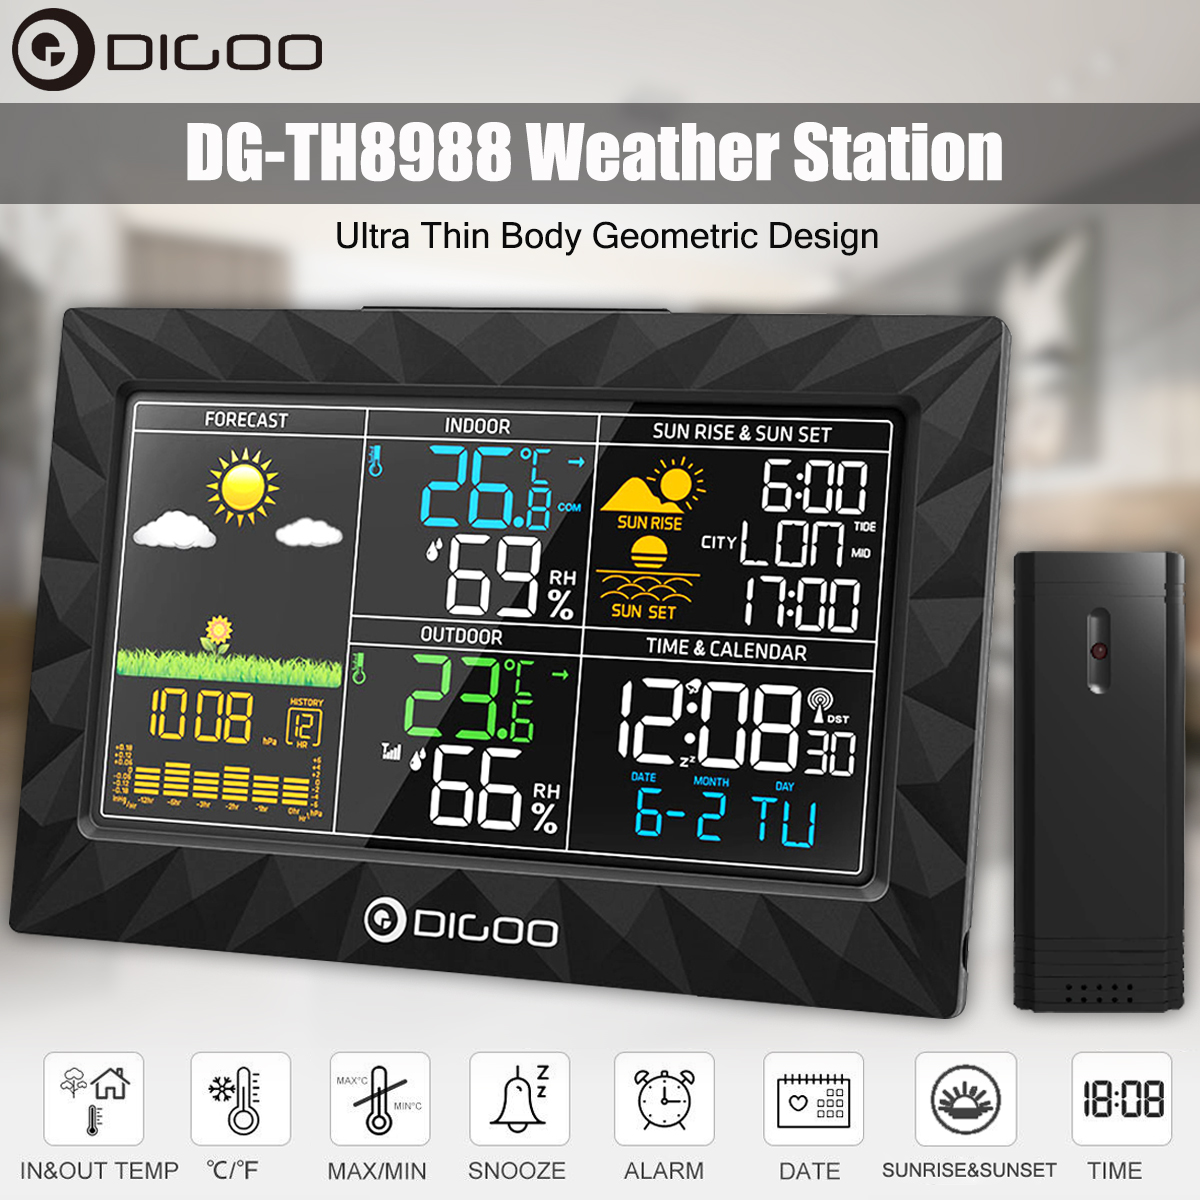 DIGOO DG-TH8988 LCD Color Indoor Outdoor Weather Station + Remote Sensor Thermometer Snooze Clock Sunrise Sunset DisplayDIGOO DG-TH8988 LCD Color Indoor Outdoor Weather Station + Remote Sensor Thermometer Snooze Clock Sunrise Sunset Display